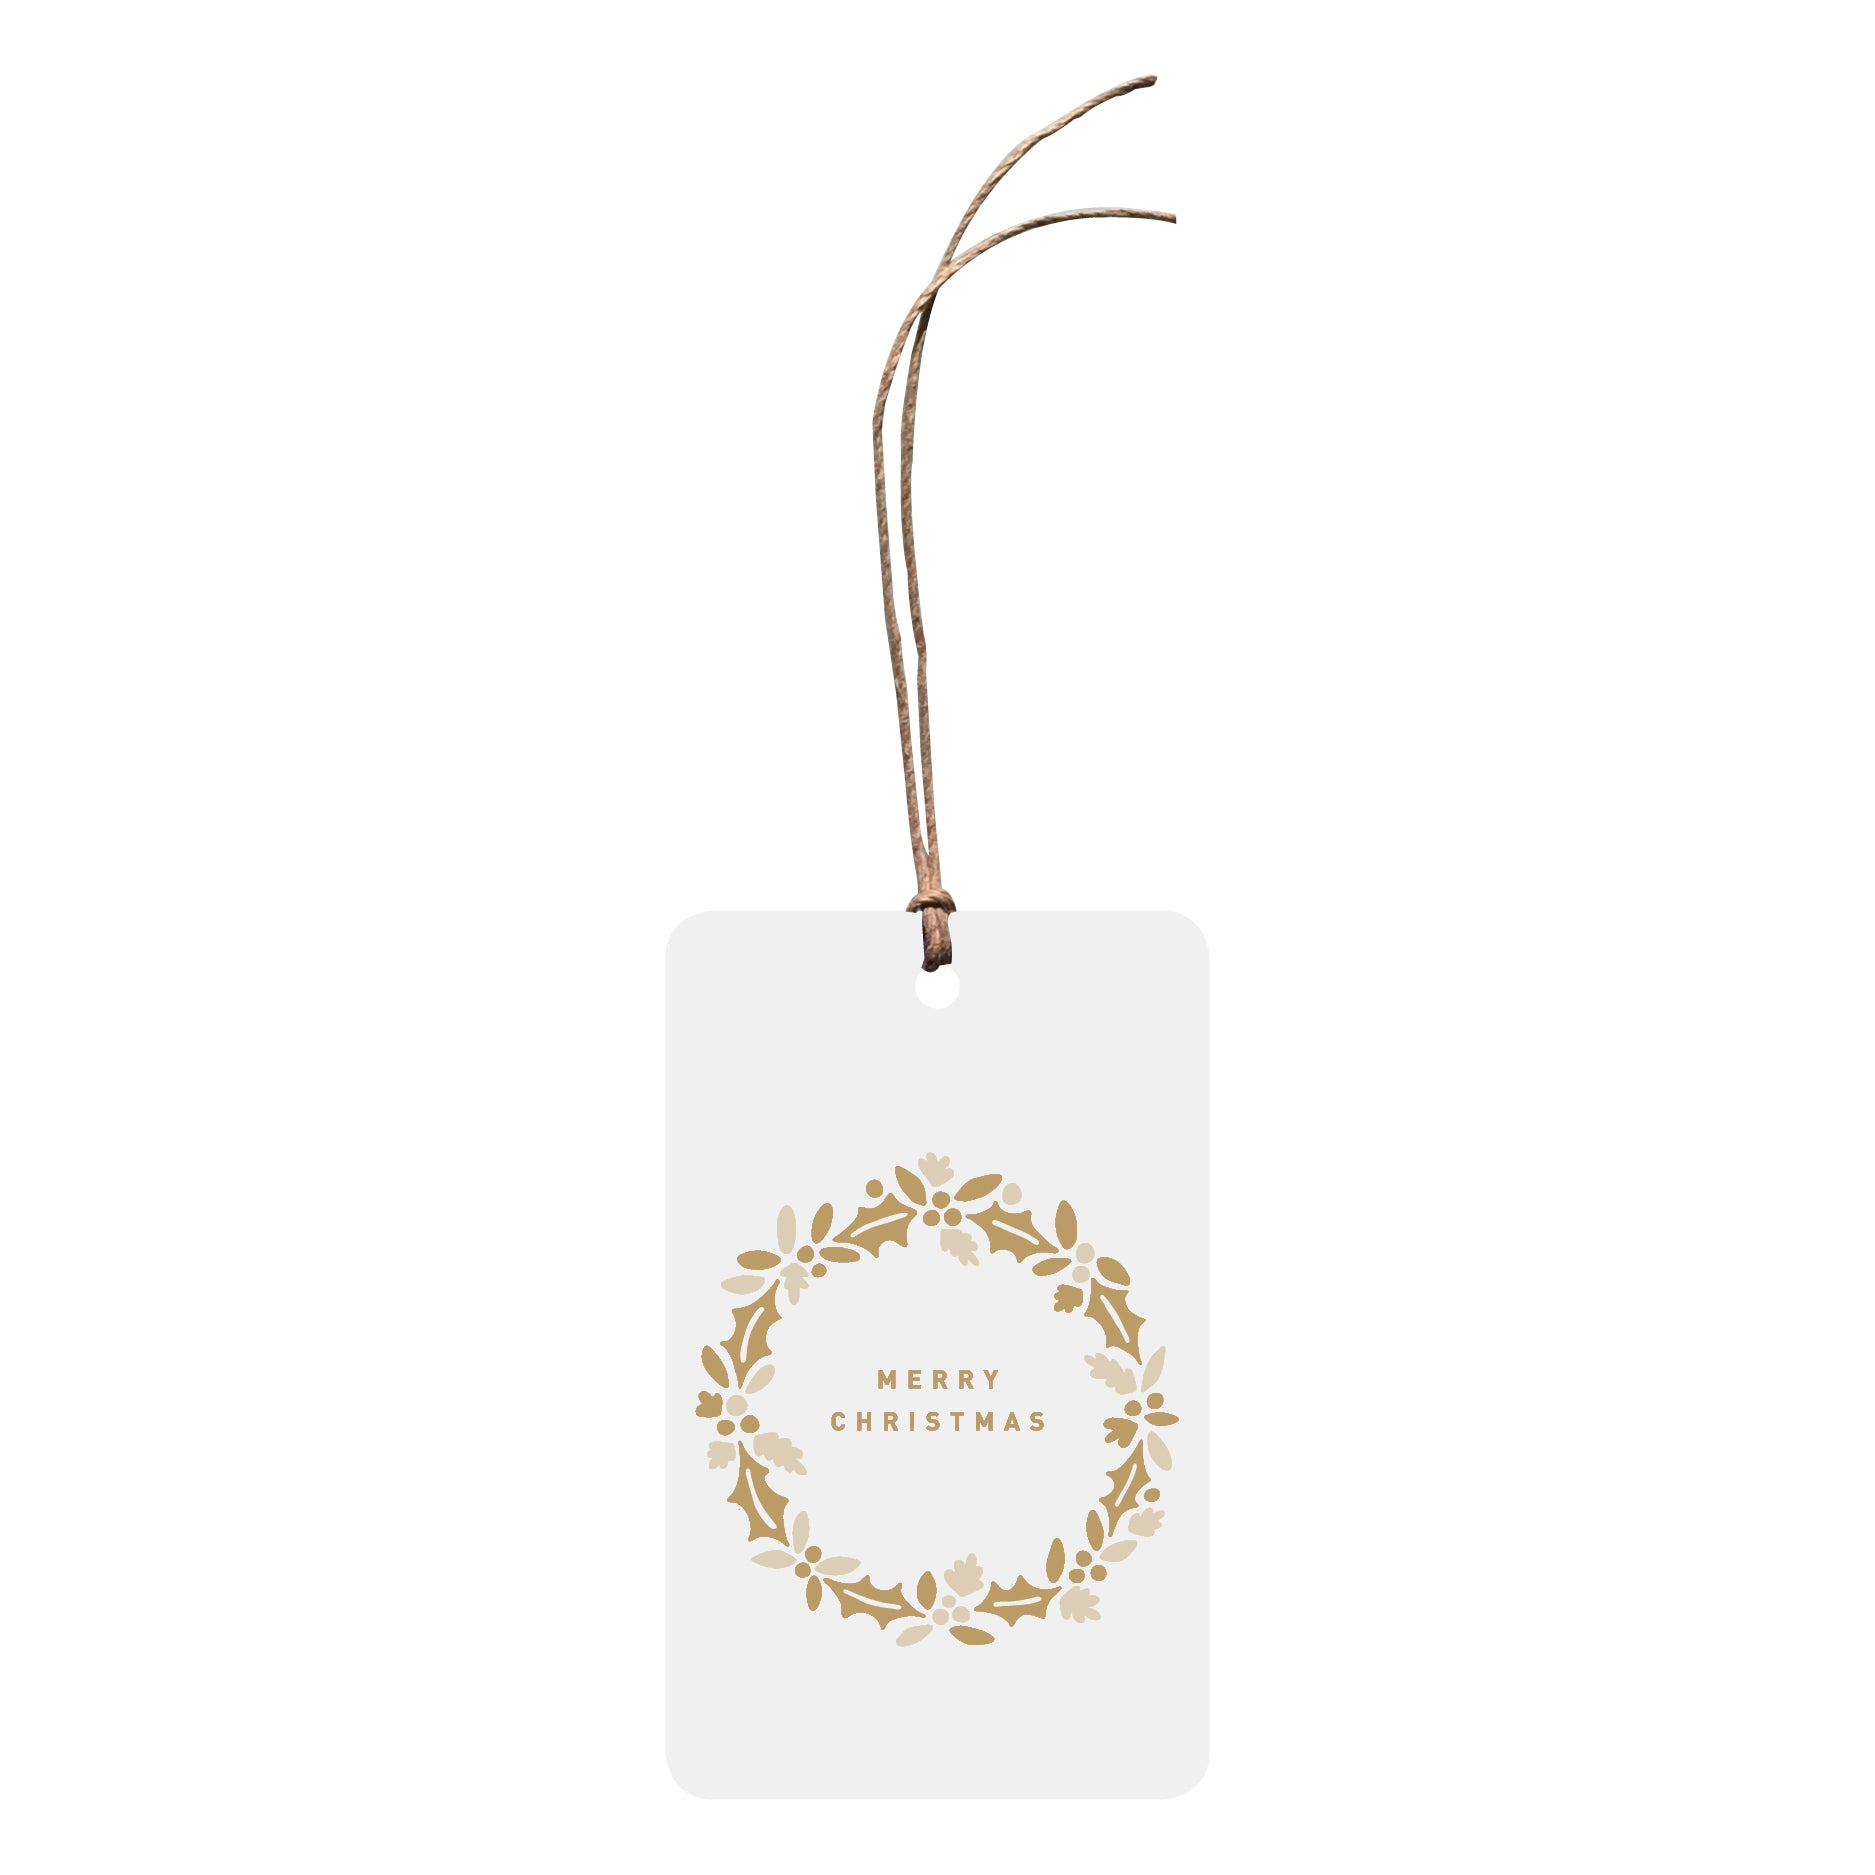 'Merry Christmas Wreath' Christmas Gift Tag